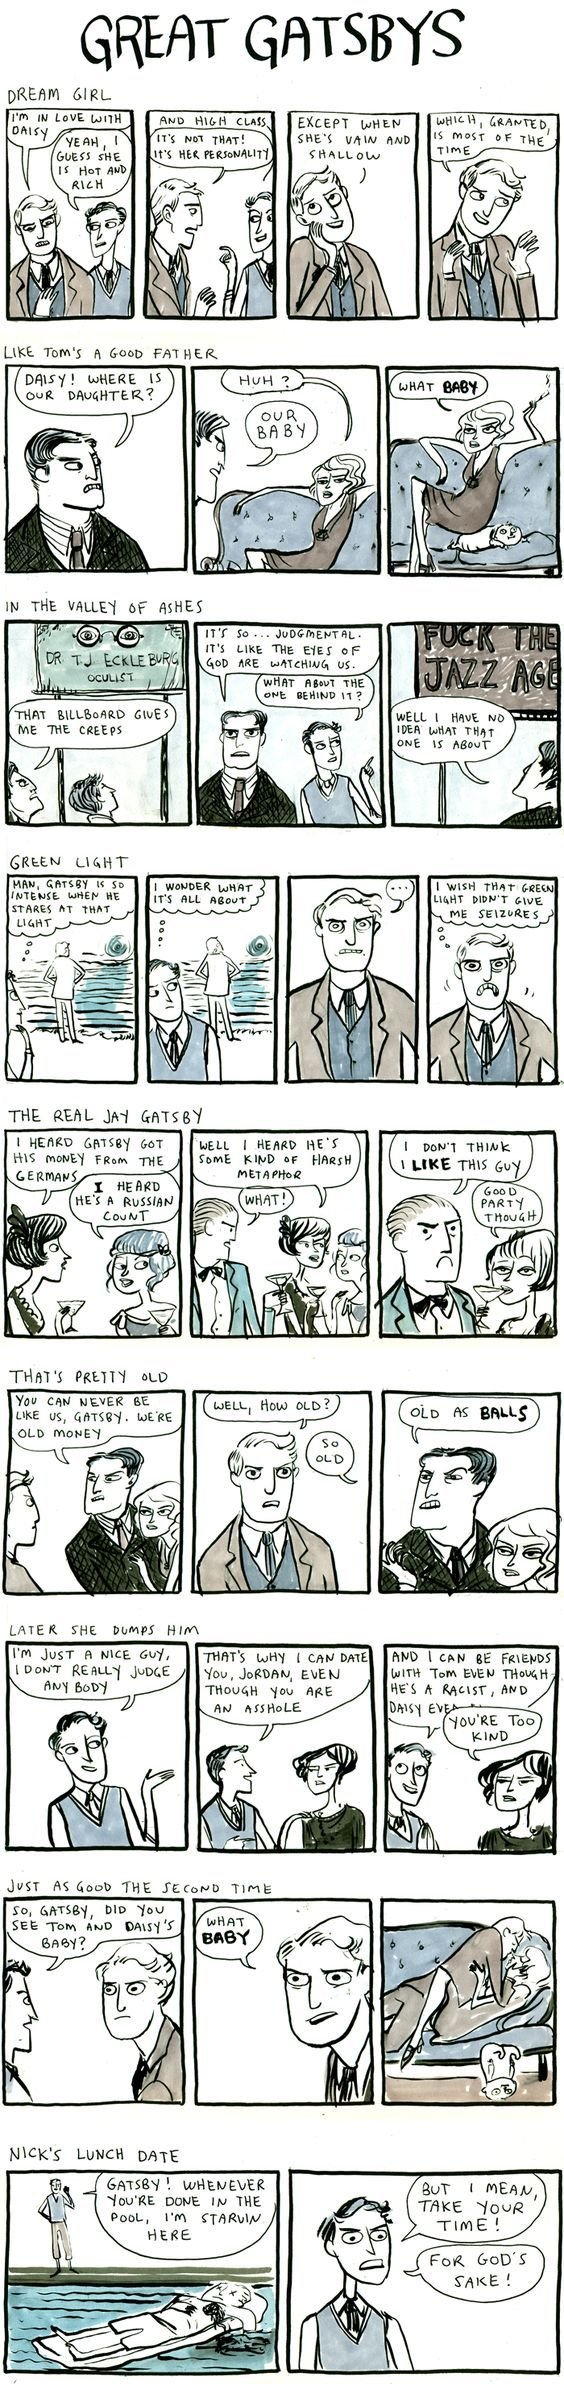 The Great Gatsby comic strip summary (watch for the F word).